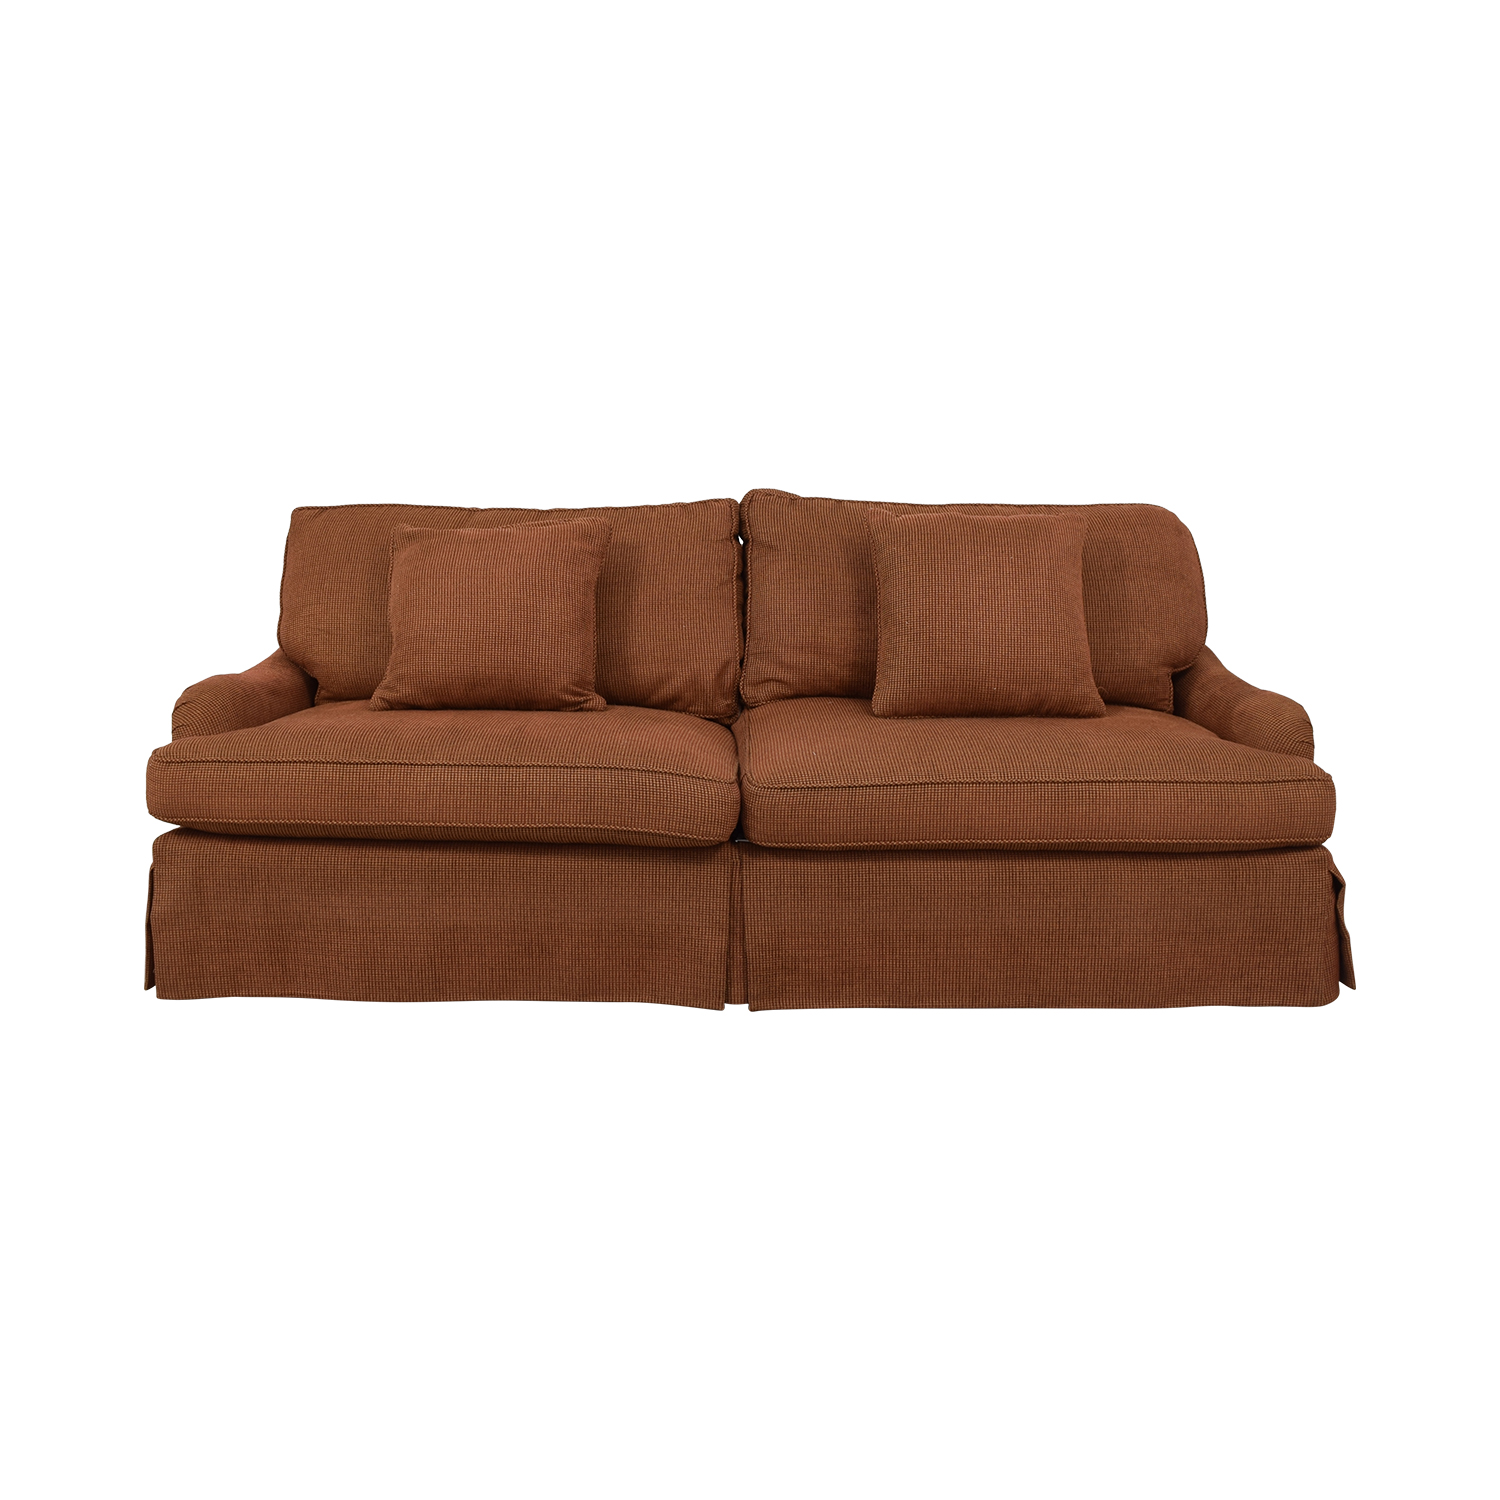 shop Safavieh Long Down Sofa by Lee Industries Safavieh Sofas